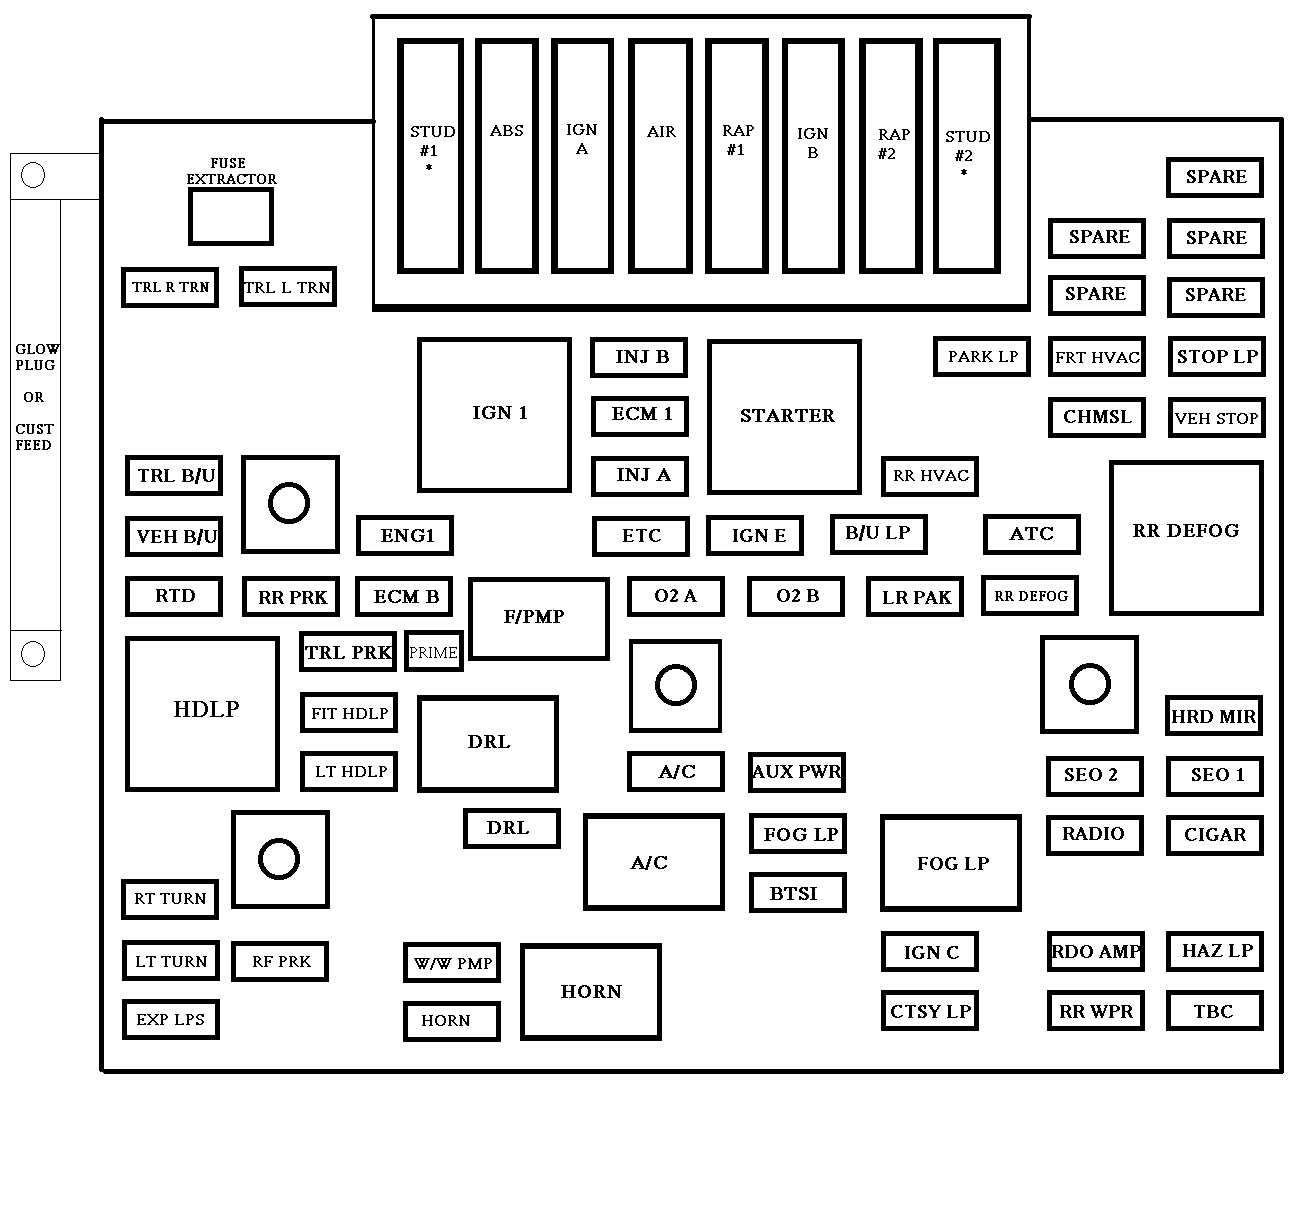 fuse box 03 explorer location wiring diagram database. Black Bedroom Furniture Sets. Home Design Ideas